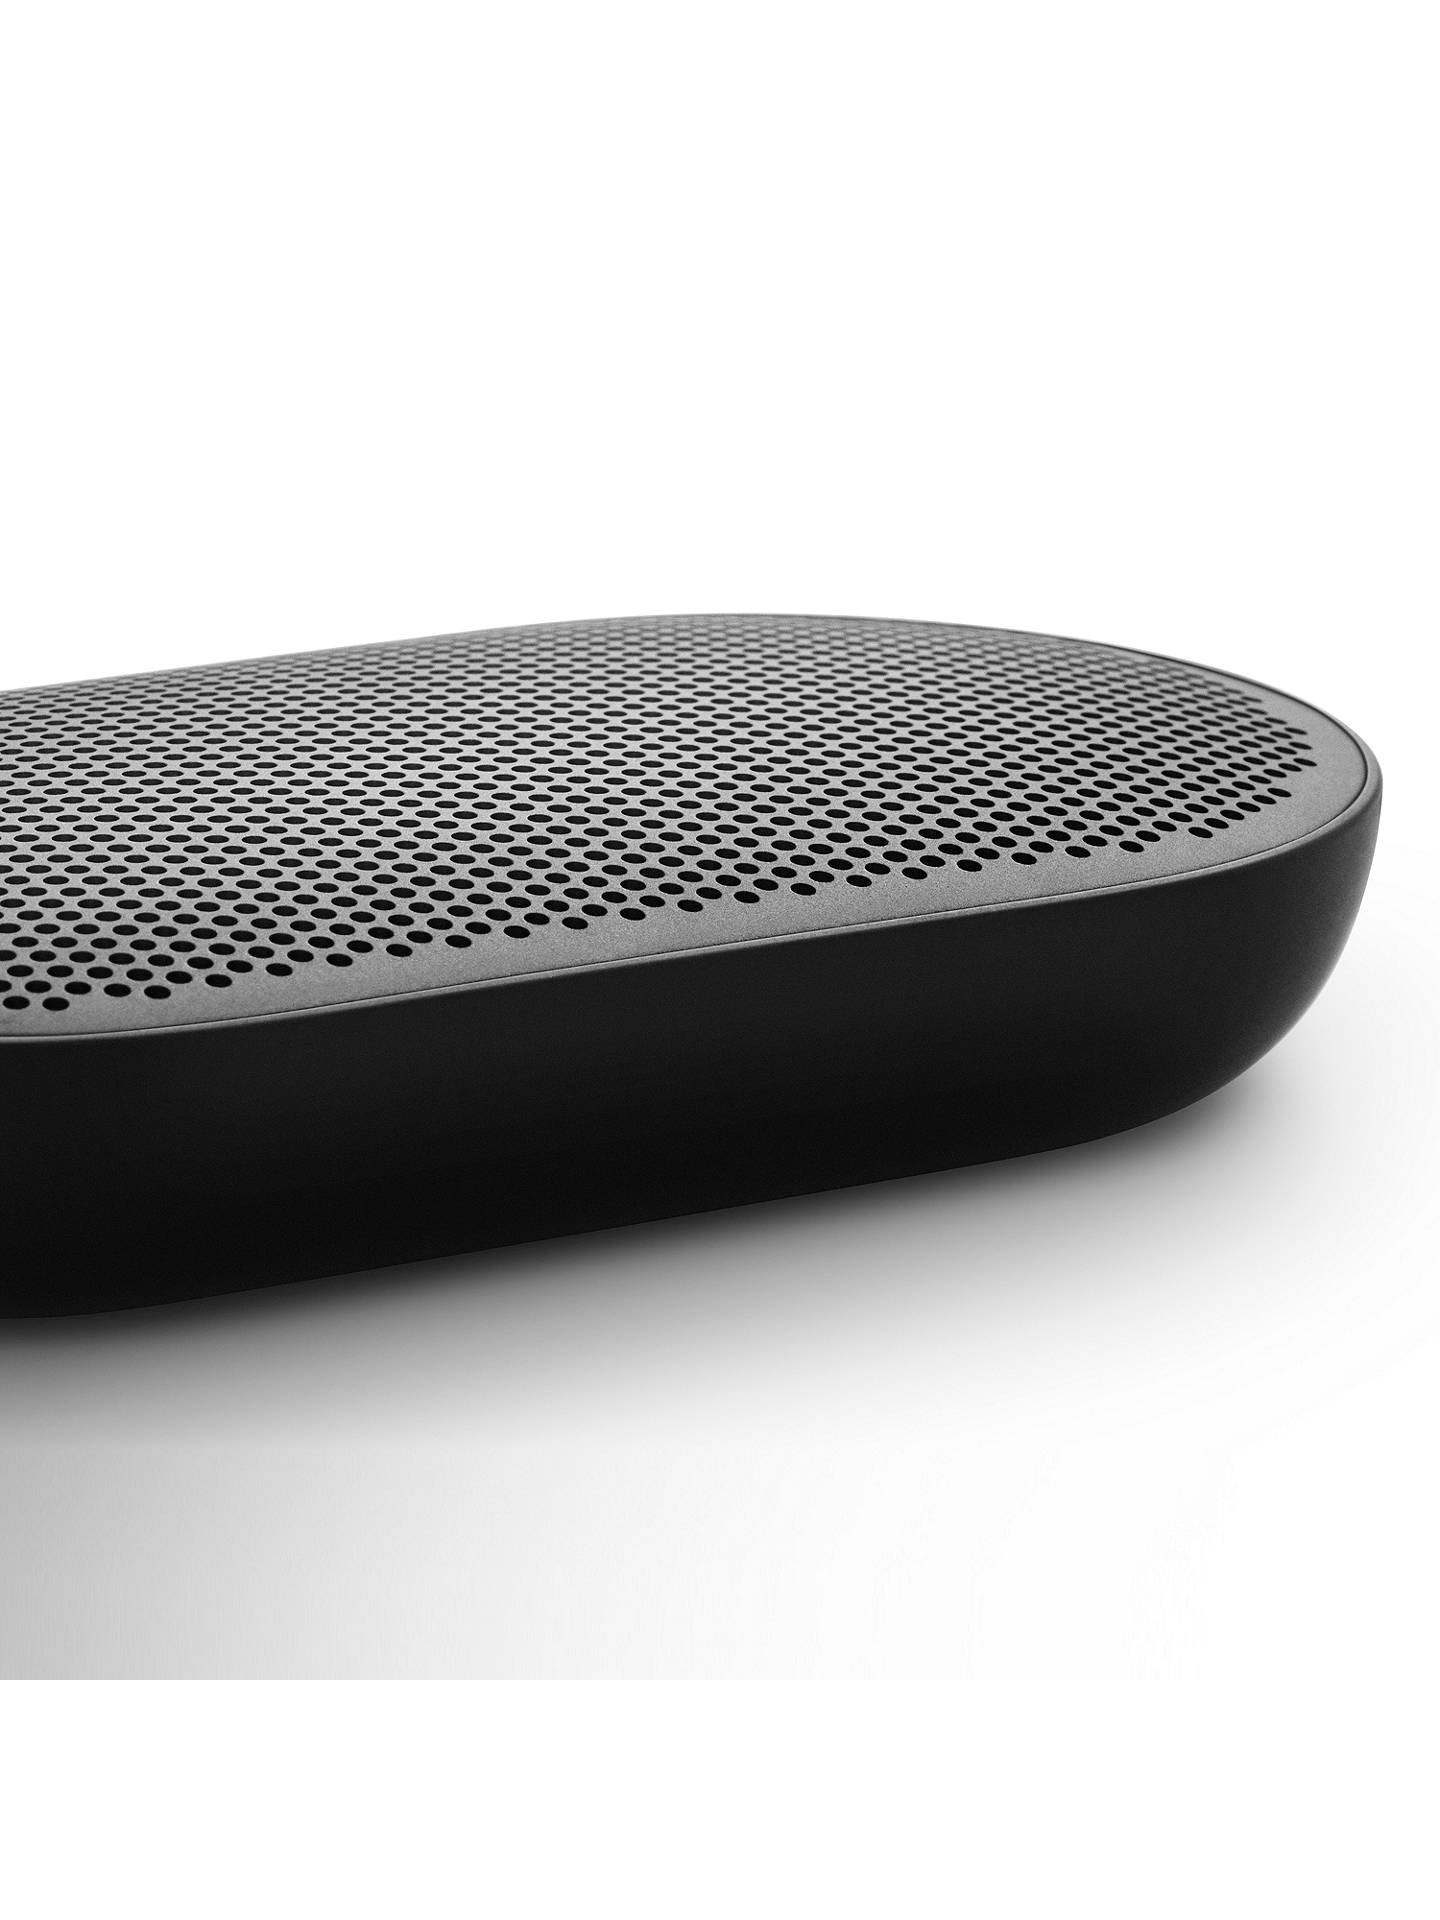 BuyB&O PLAY by Bang & Olufsen Beoplay P2 Portable Splash-Resistant Bluetooth Speaker, Black Online at johnlewis.com